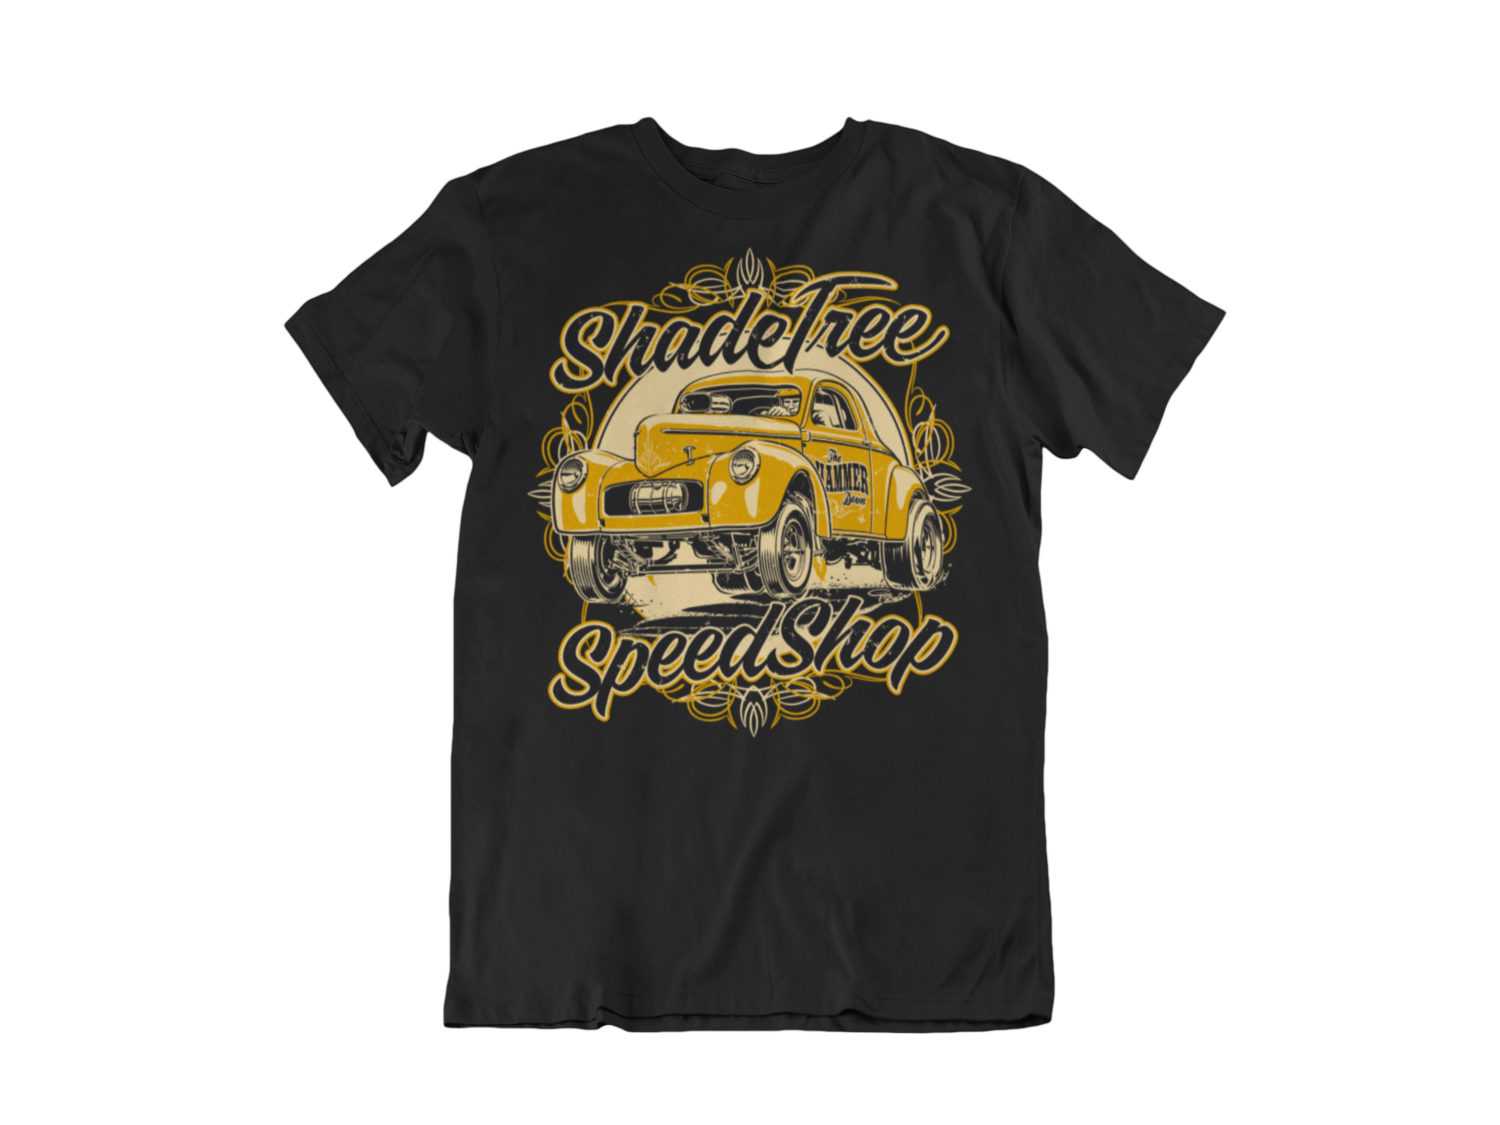 "SHADE TREE SPEED SHOP ""Willys"" T-SHIRT MAN BY Ger ""Dutch Courage"" Peters artwork"